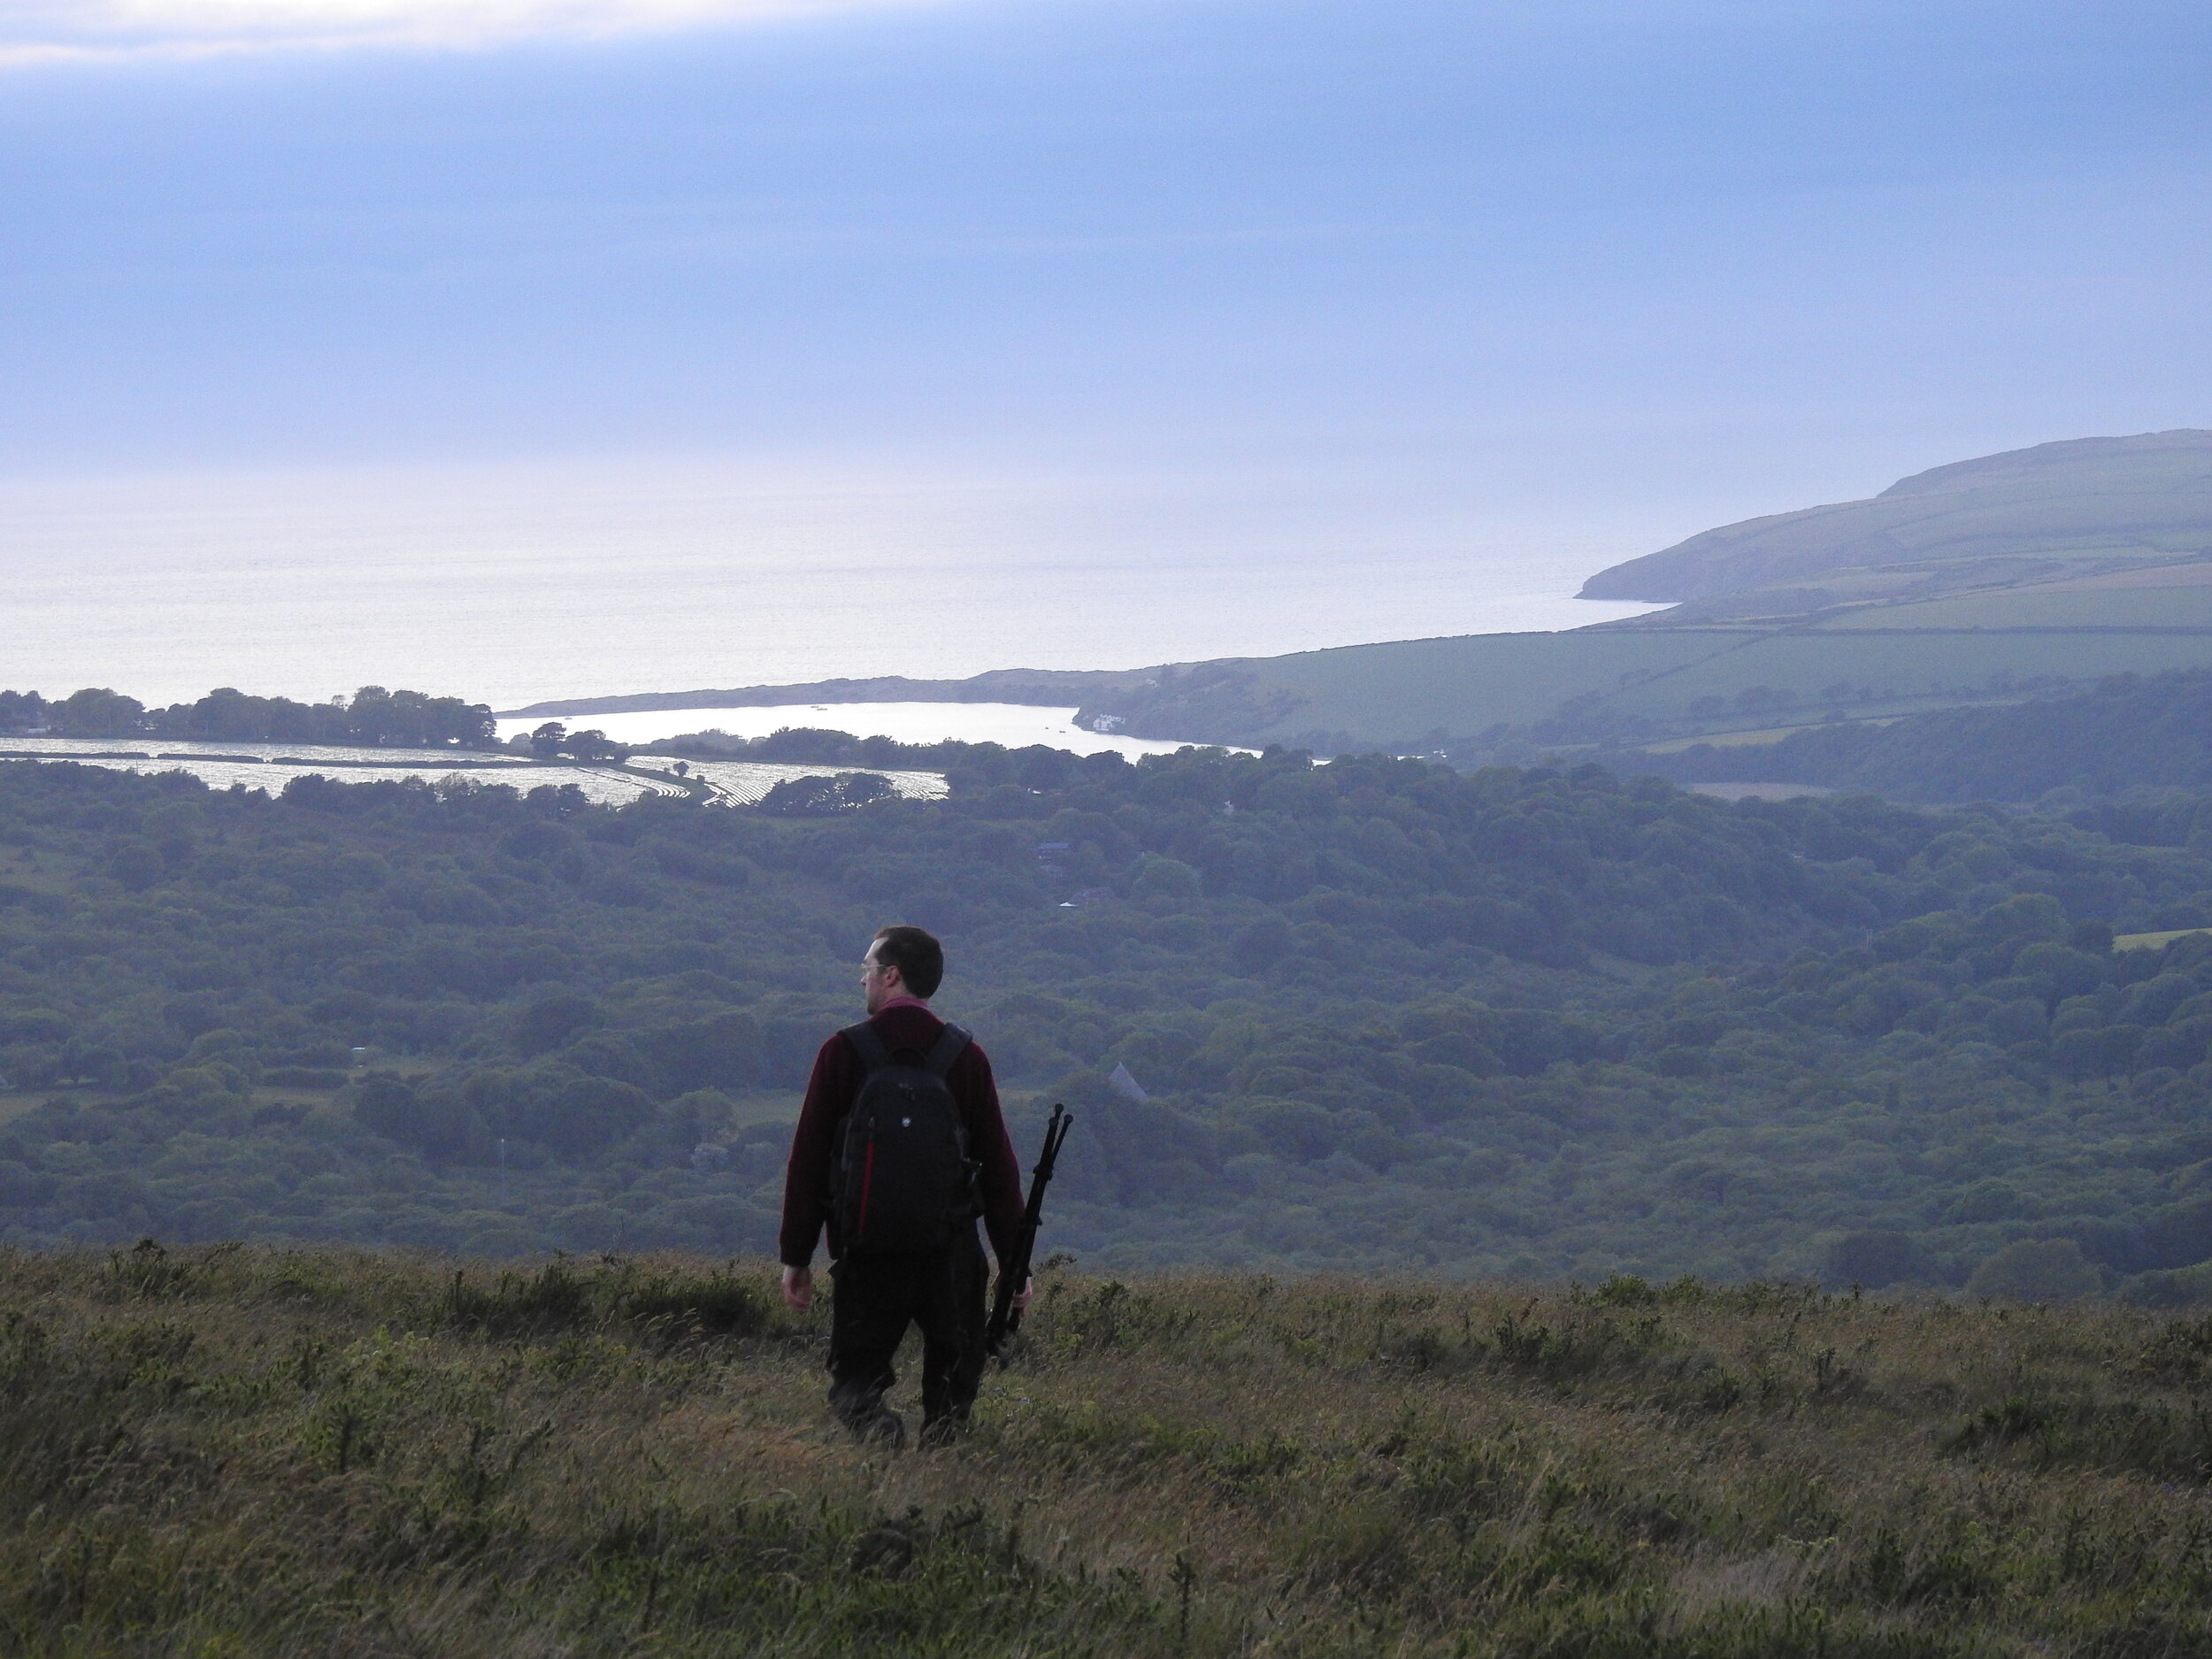 Hiking over the hills towards Nevern Estuary in Pembrokeshire, Wales.